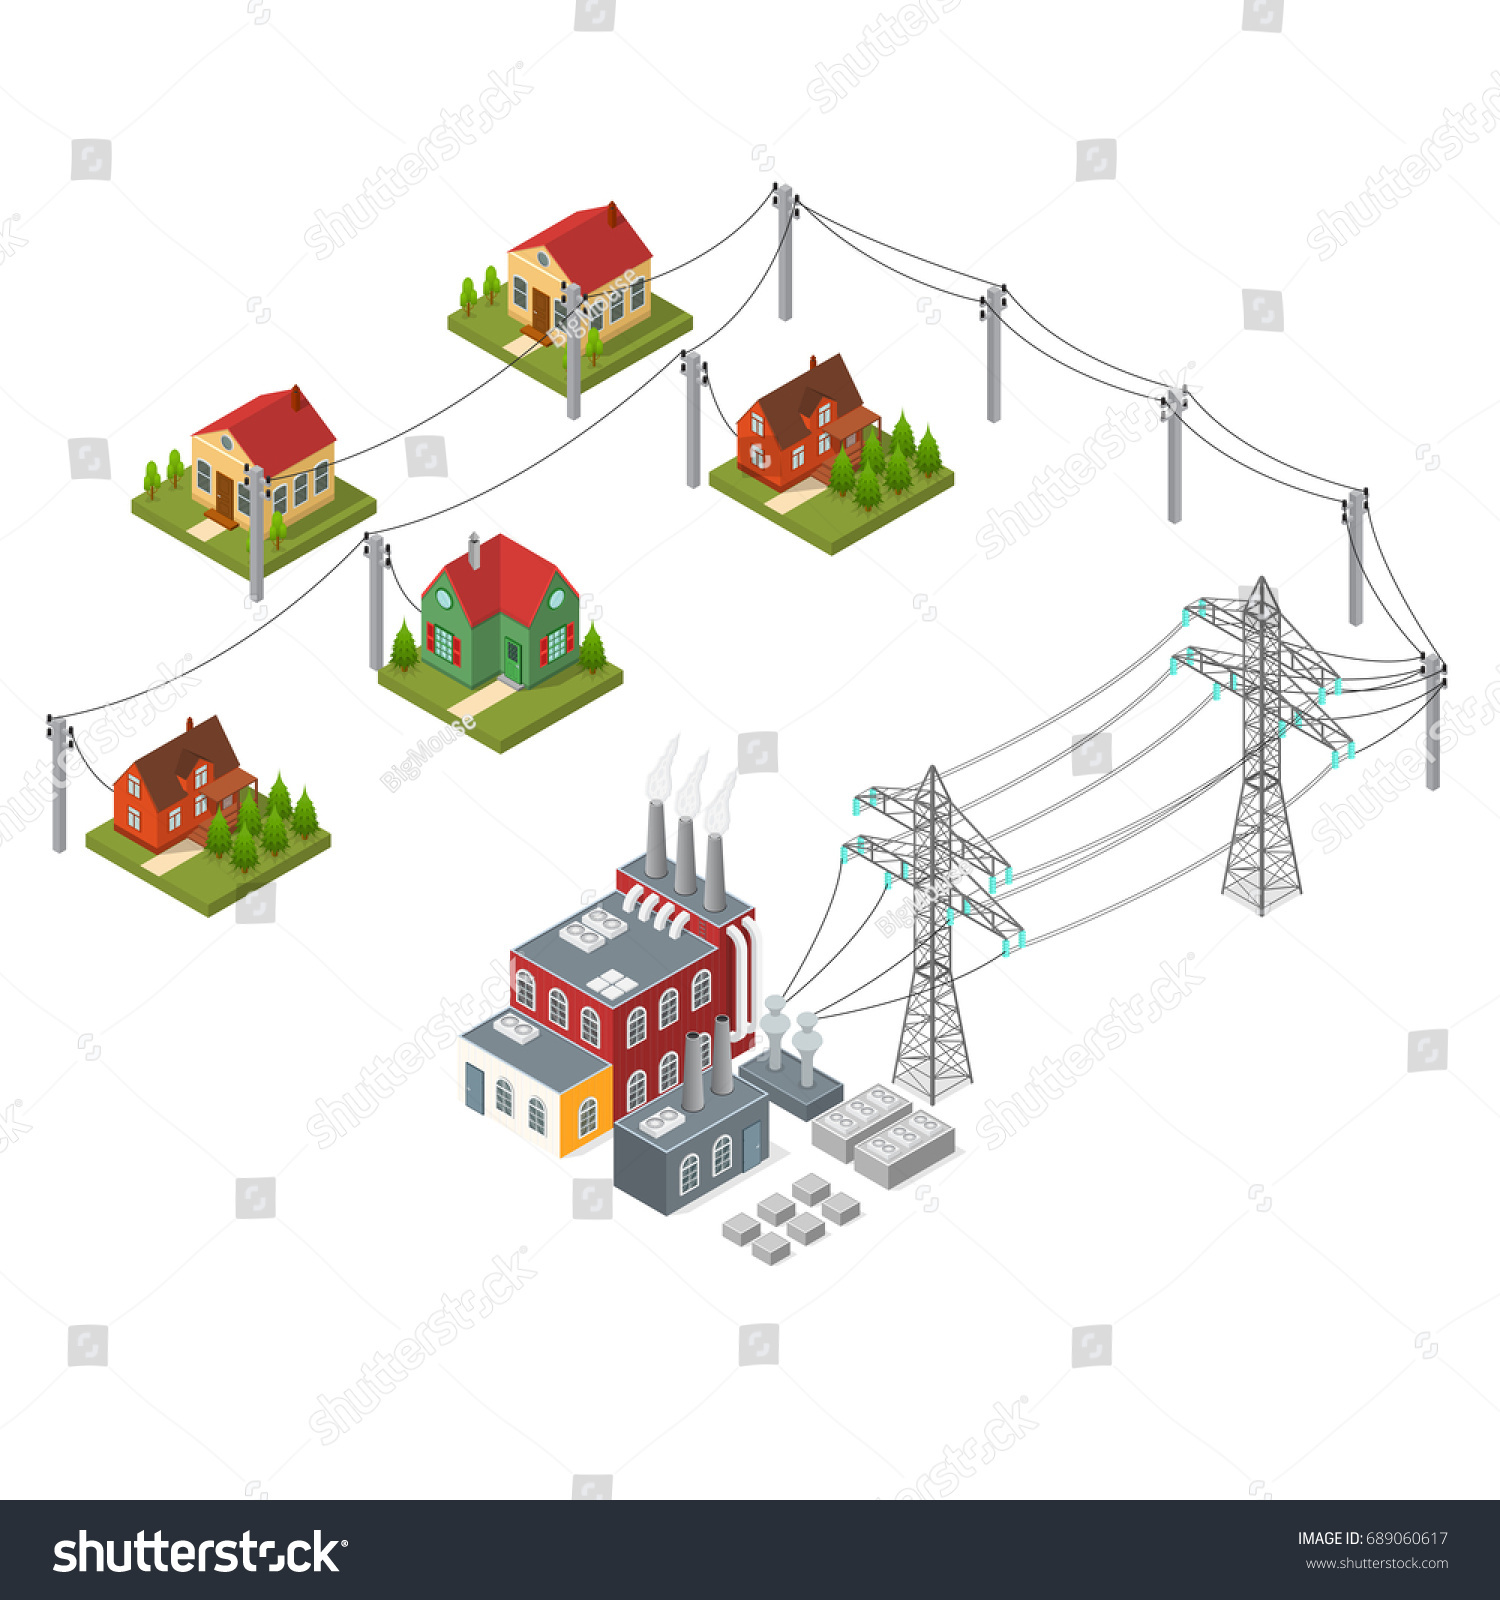 Hydroelectricity Power Station Element Set Isometric Stock Vector Hydroelectric Plant Diagram And View Alternative Energy Concept Dam On The River